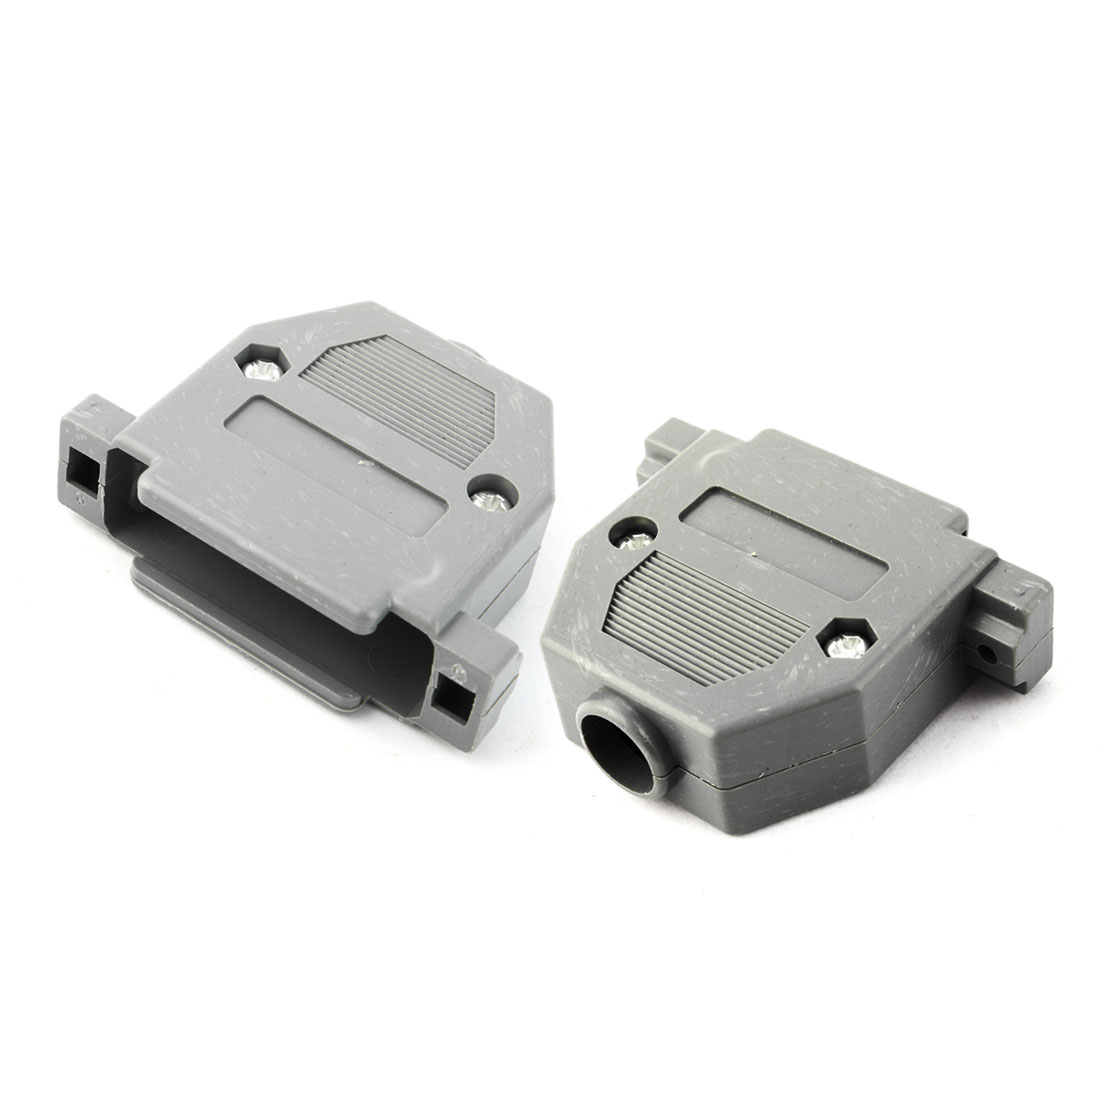 DIY Serial Port D-Sub DB9 Connector Kit Plastic Hoods Shell Gray 2pcs w Screws